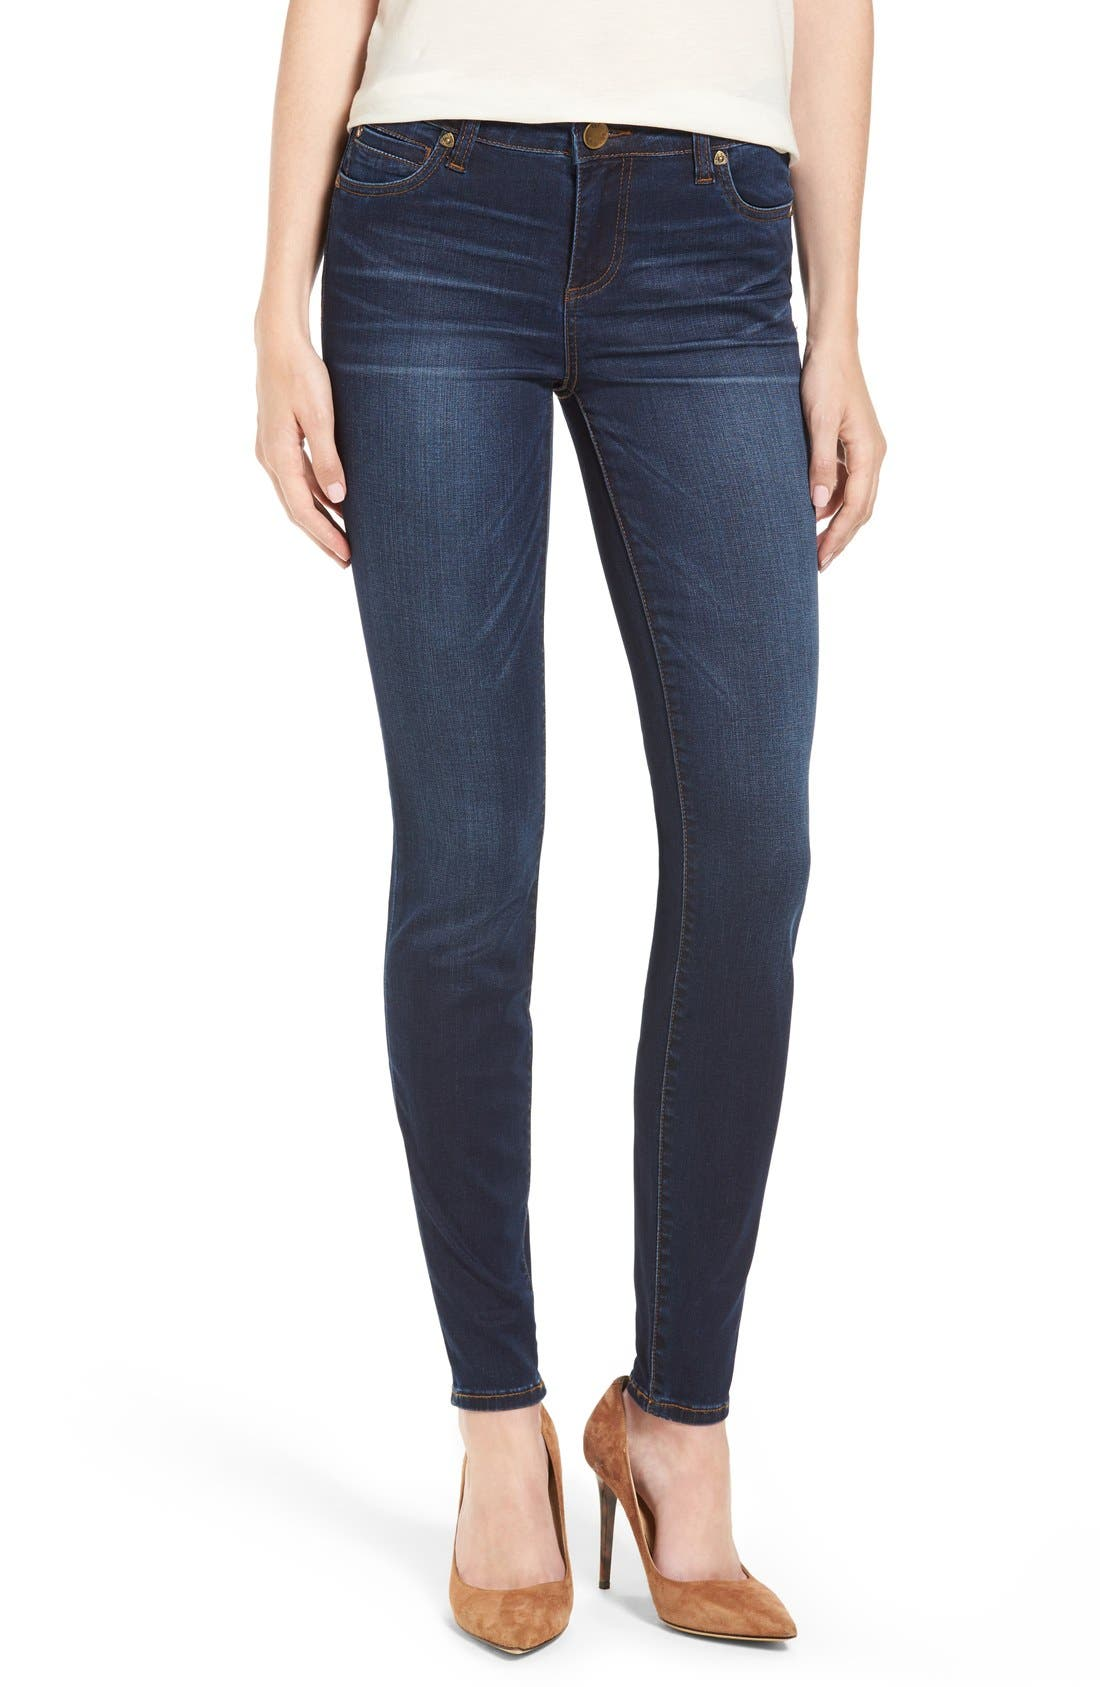 Alternate Image 1 Selected - Kut From the Kloth Mia Stretch Skinny Jeans (Awareness)